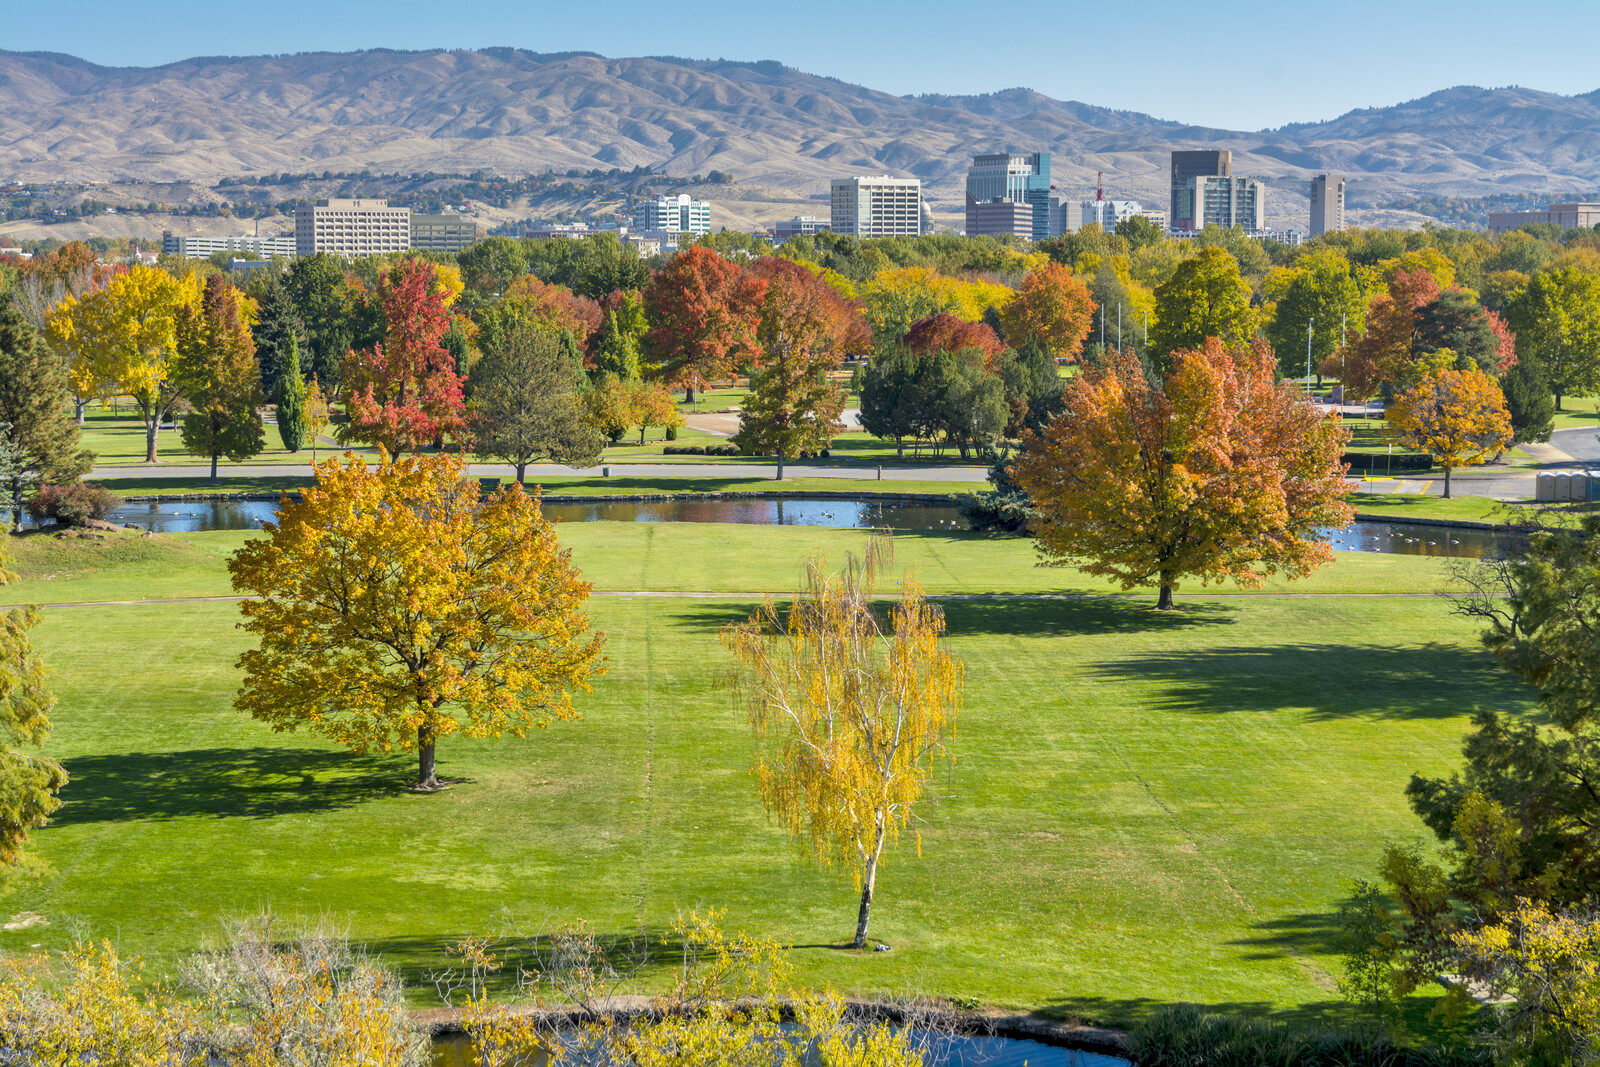 Grassy field and small lake in the fall with colorful leaves on the trees overlooking the boise skyline with mountains in the background